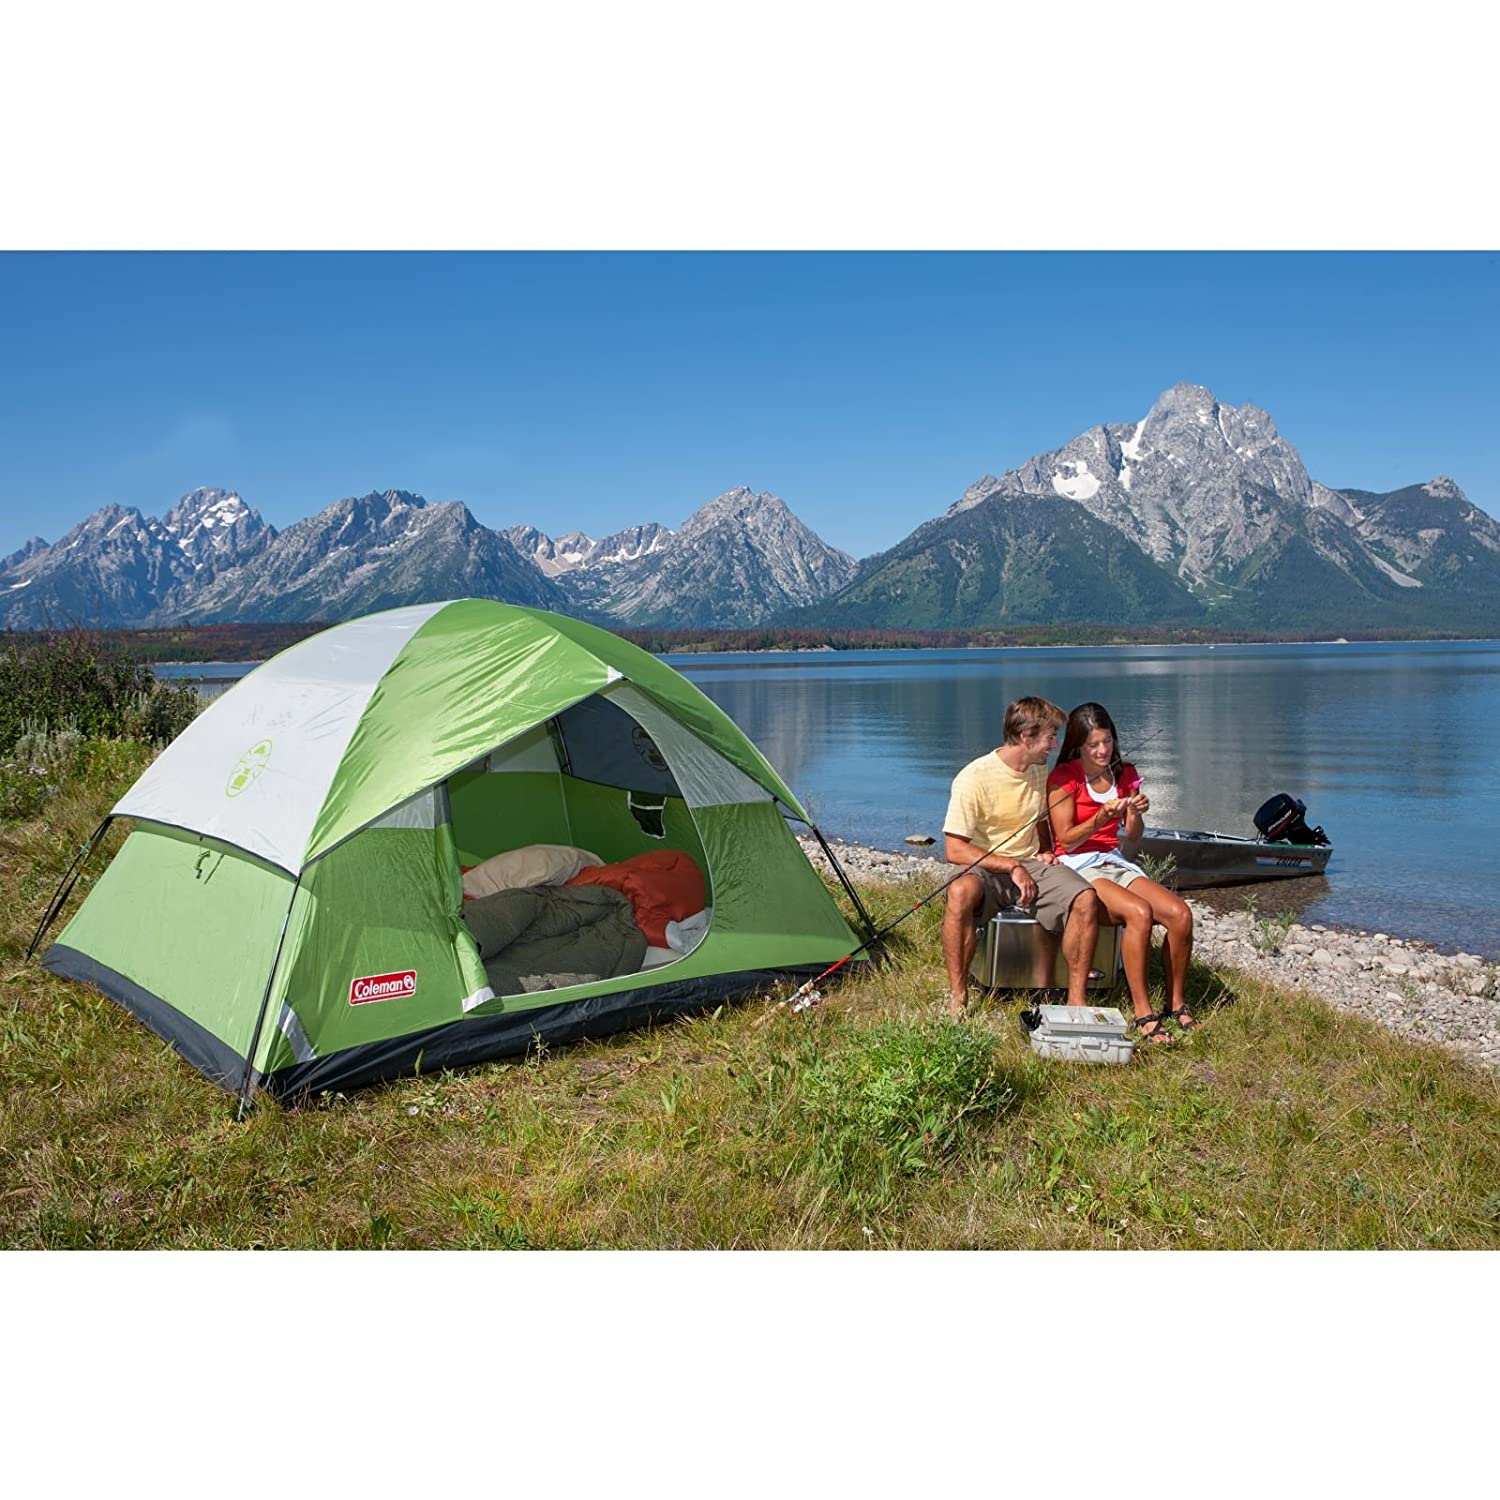 Sundome 4 Person Tent  sc 1 st  Tactical Gears Lab & The 10 Best Cheap Camping Tents in 2018 - Review with Buying Guide